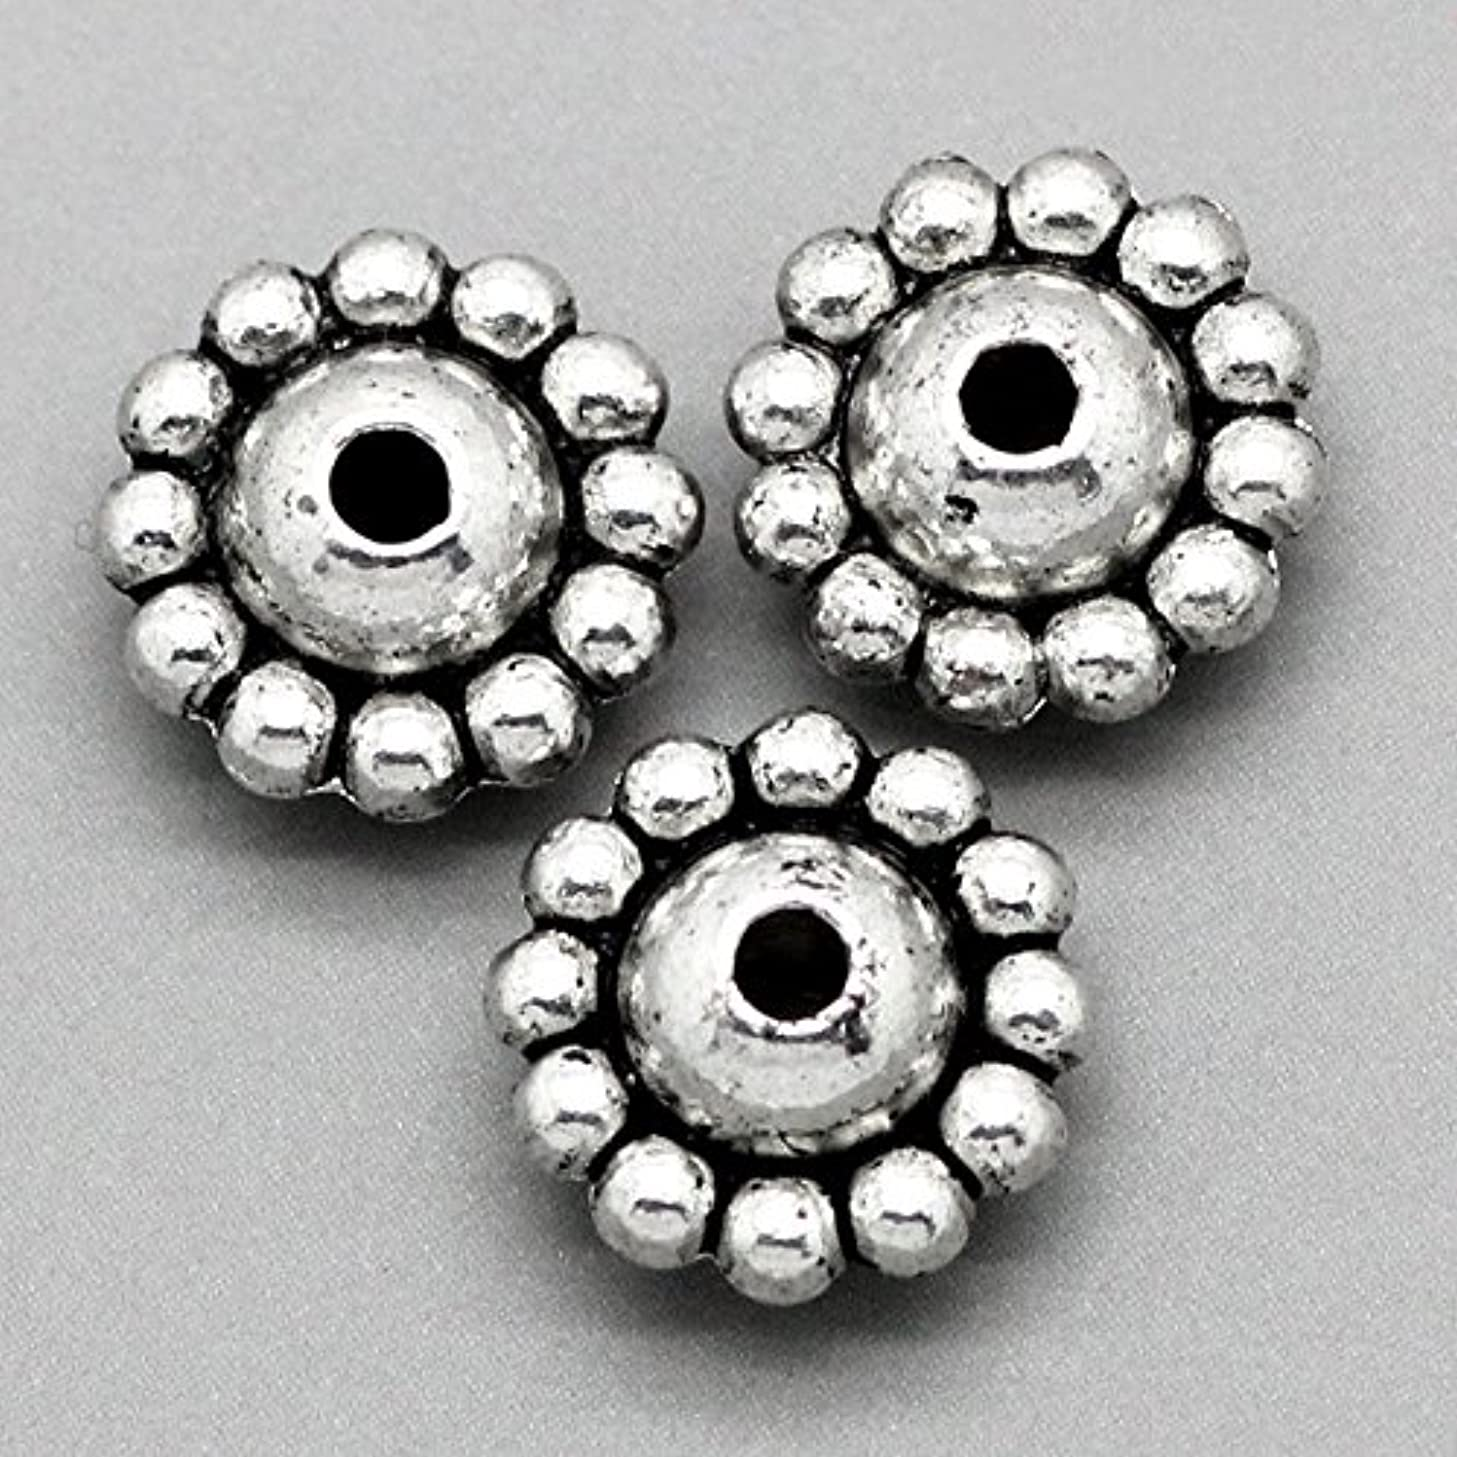 50pc Antiqued Silver Dot Spacer Beads 9x5mm Beading Supplies [Office Product]